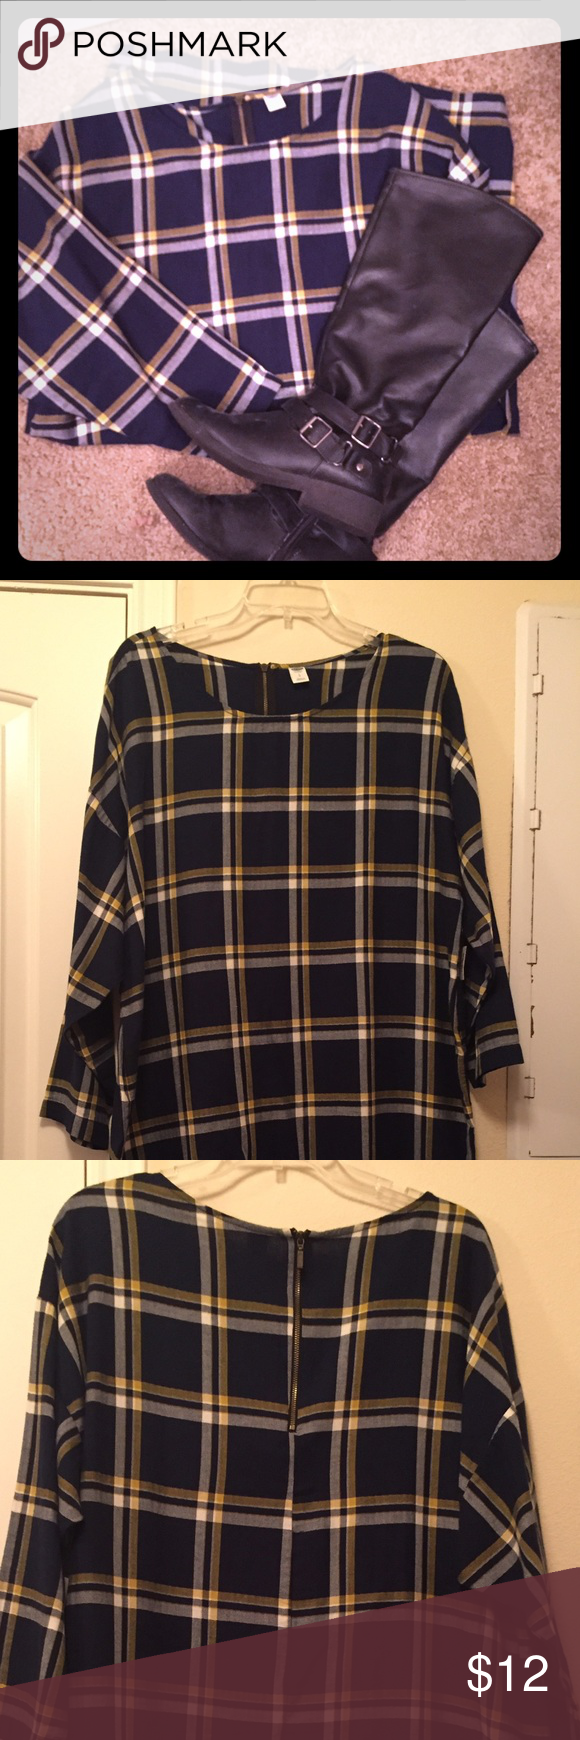 Old Navy plaid shirt dress Navy blue, white, and yellow plaid shirt dress. Knew length, loose fitting. Perfect for fall! Brand new. Old Navy Dresses Midi